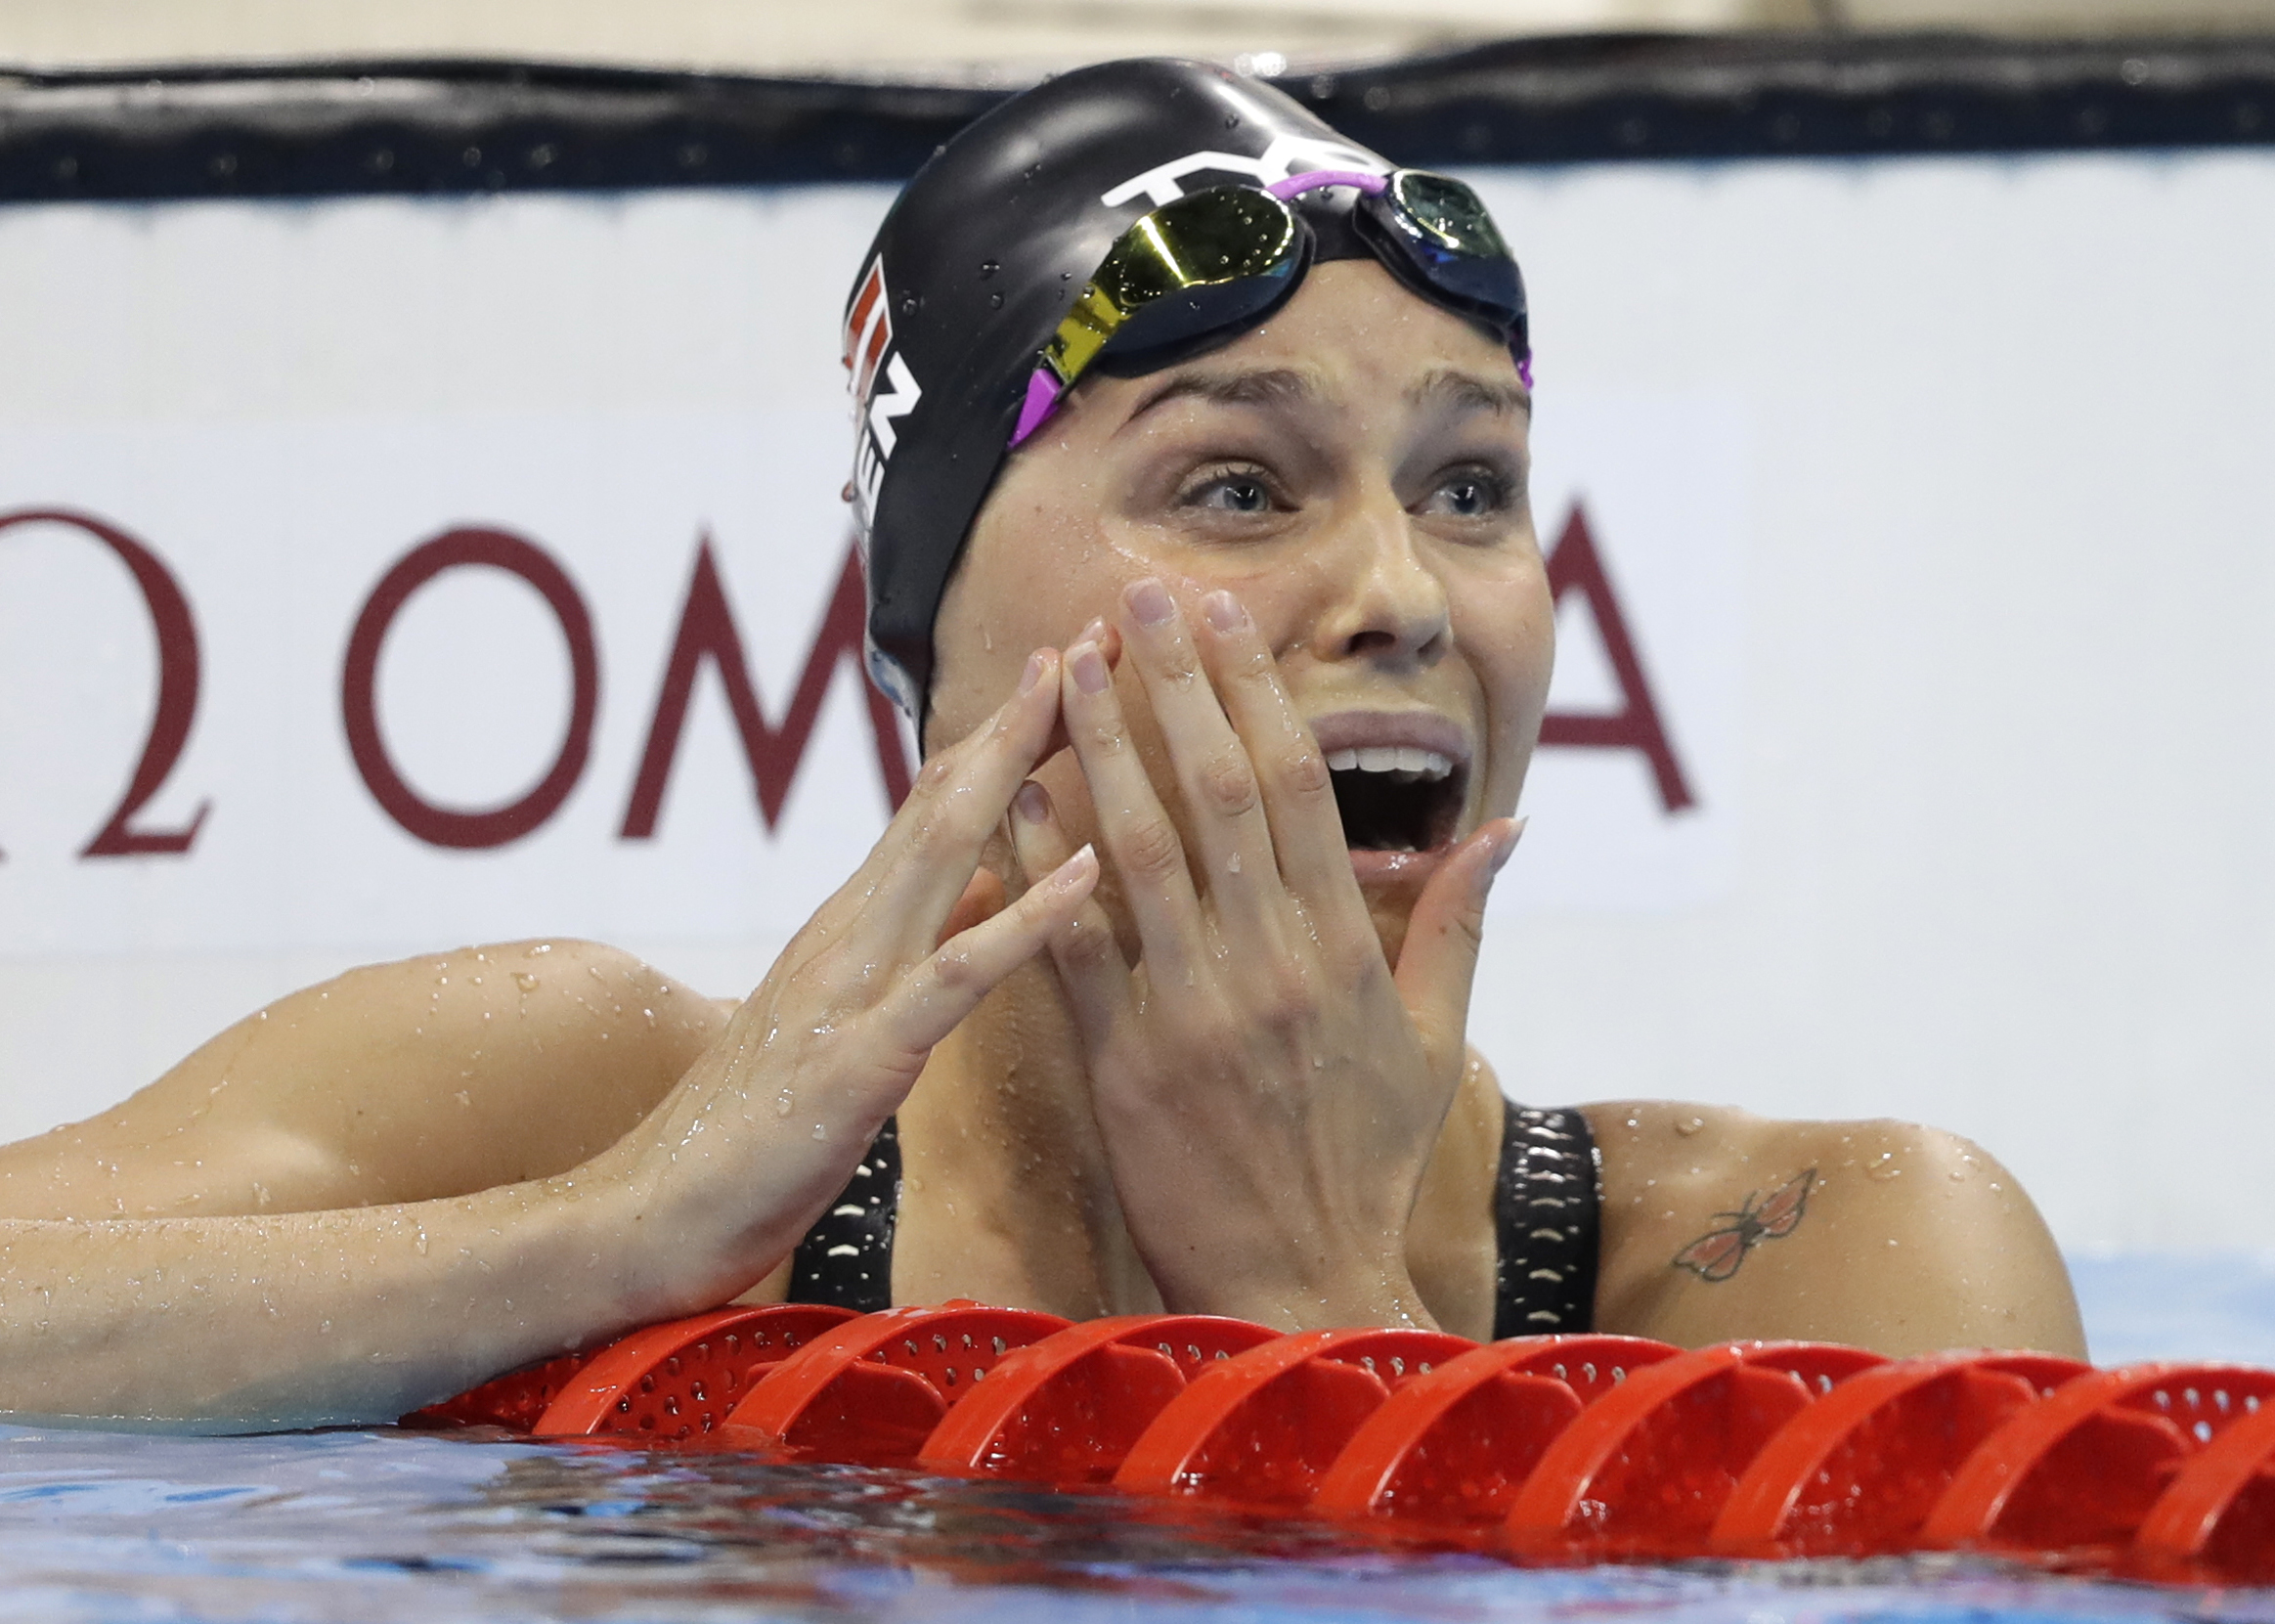 Denmark's Pernille Blume reacts after winning the women's 50-meter freestyle final during the swimming competitions at the 2016 Summer Olympics, Aug. 13, 2016, in Rio de Janeiro, Brazil.